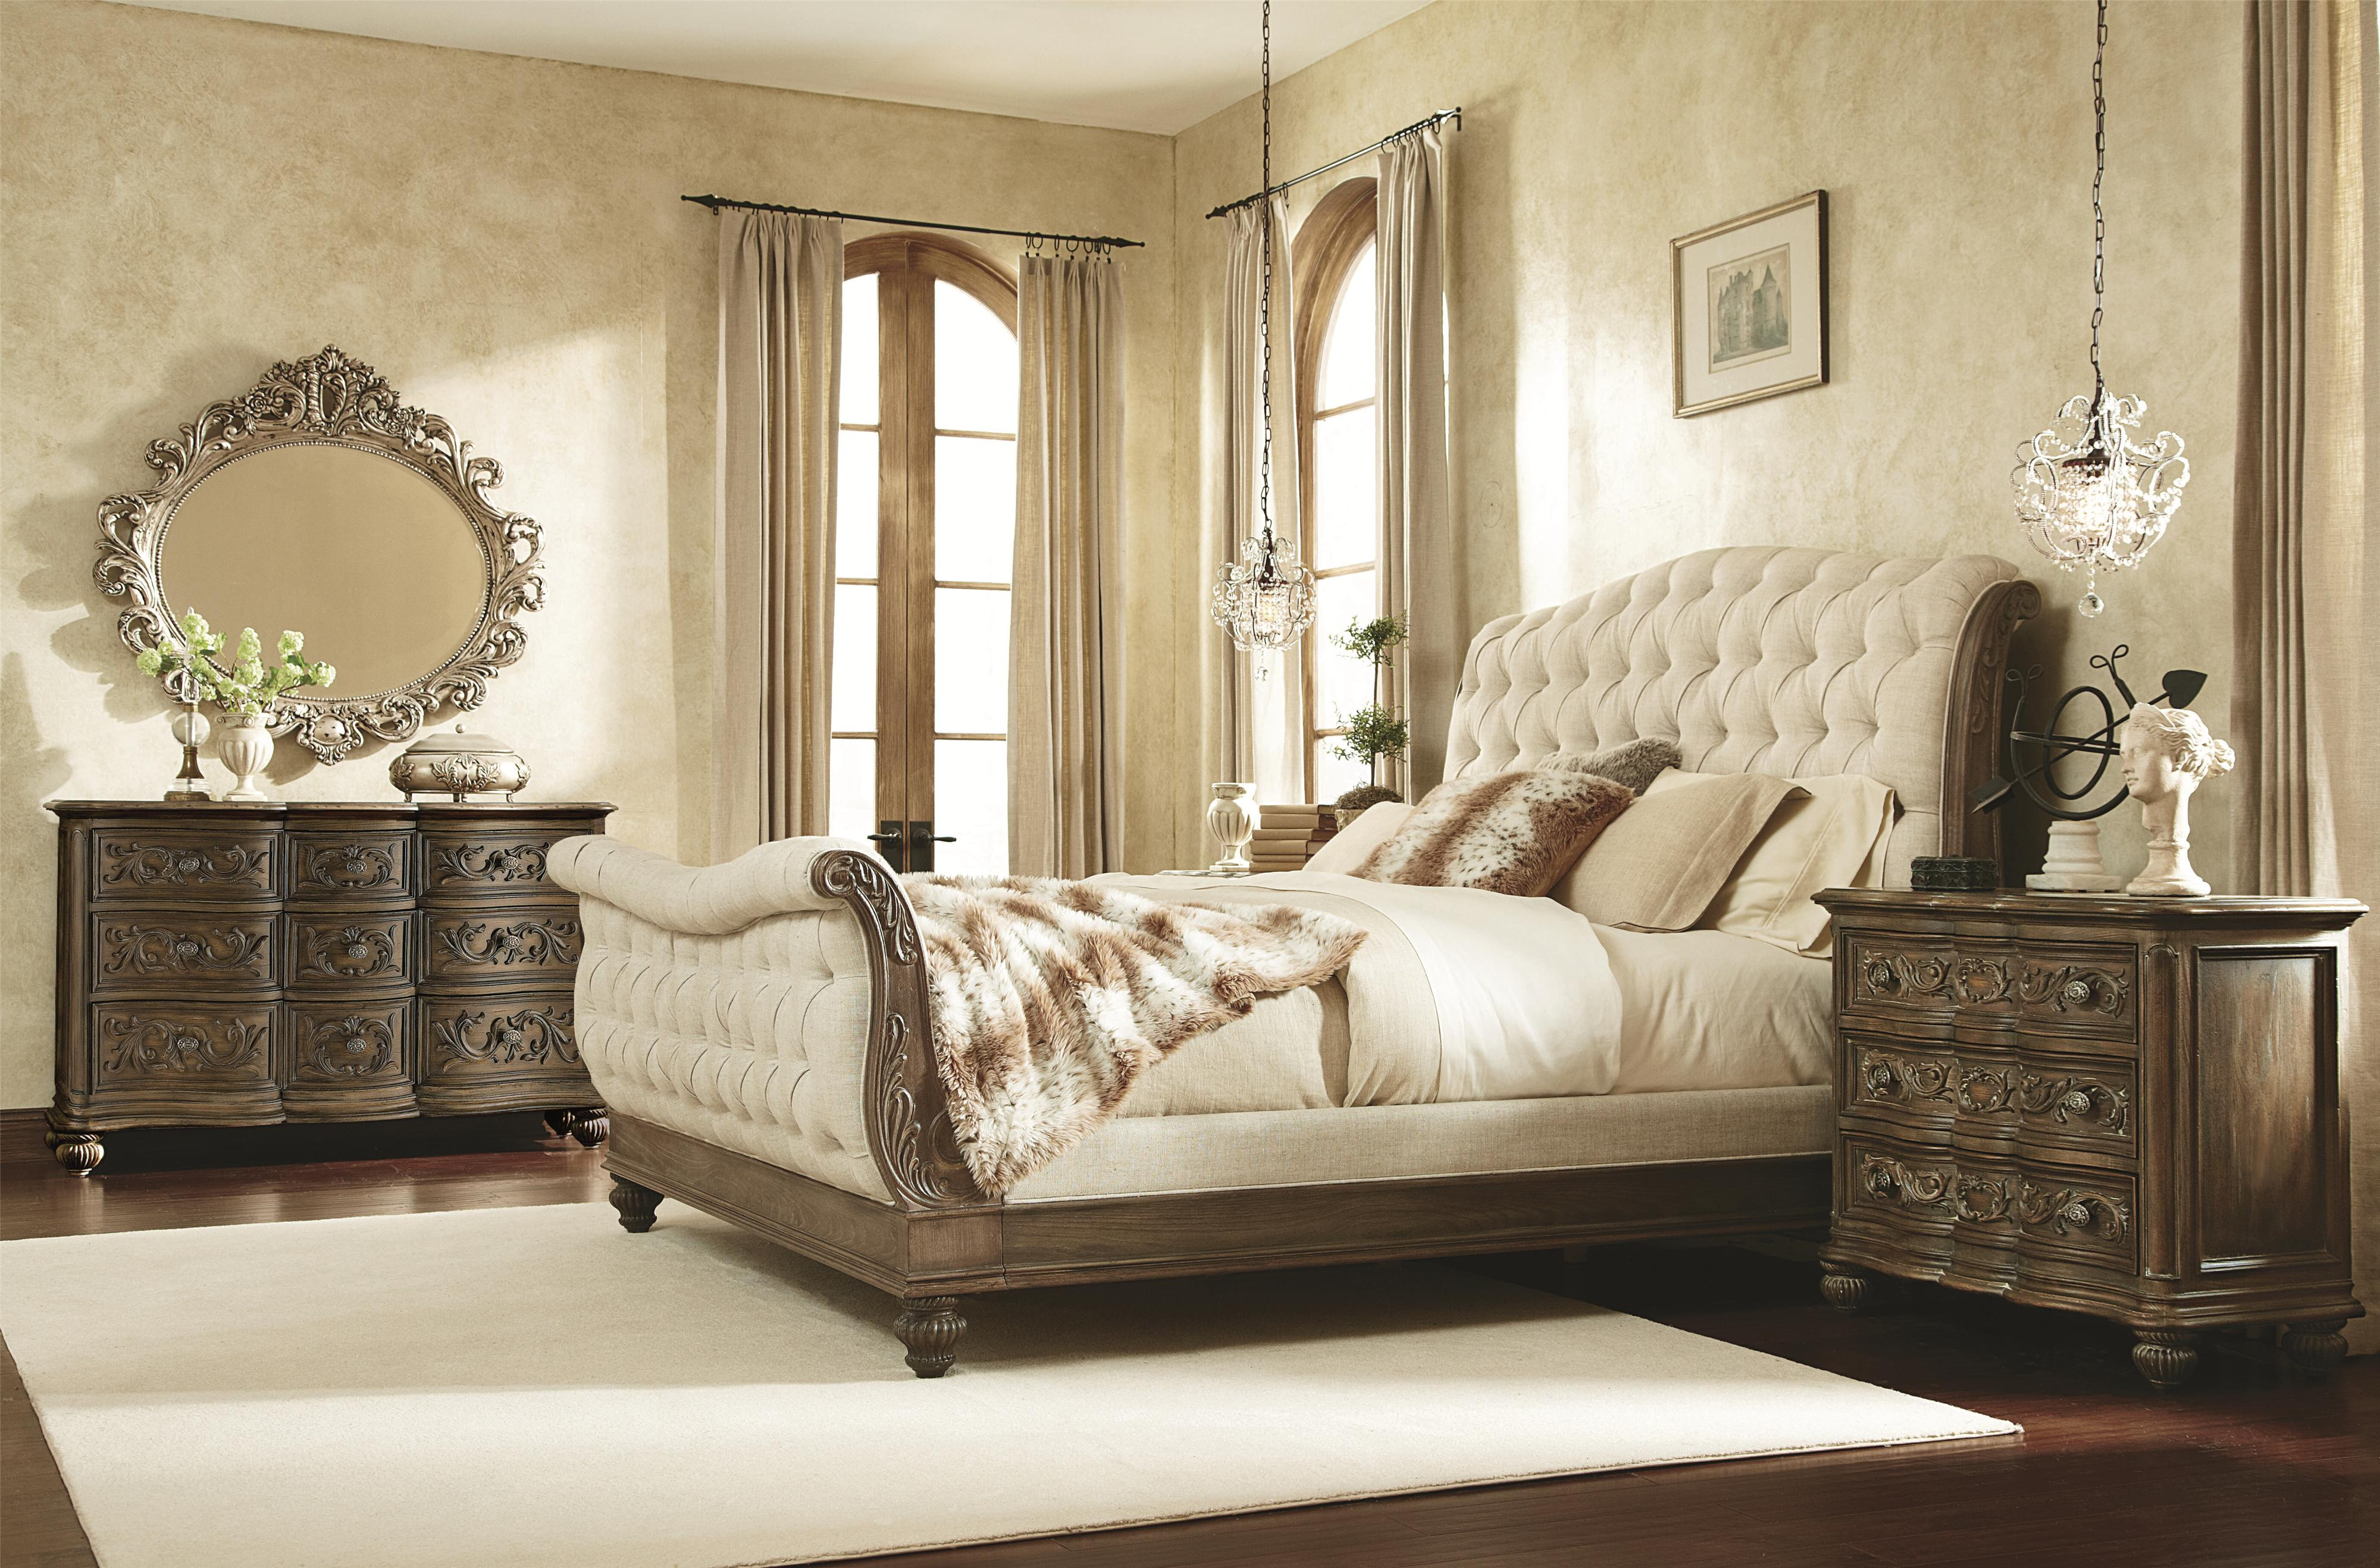 American Drew Jessica McClintock Home - The Boutique Collection Queen Bedroom Group - Item Number: 217B Queen Bedroom Group 4